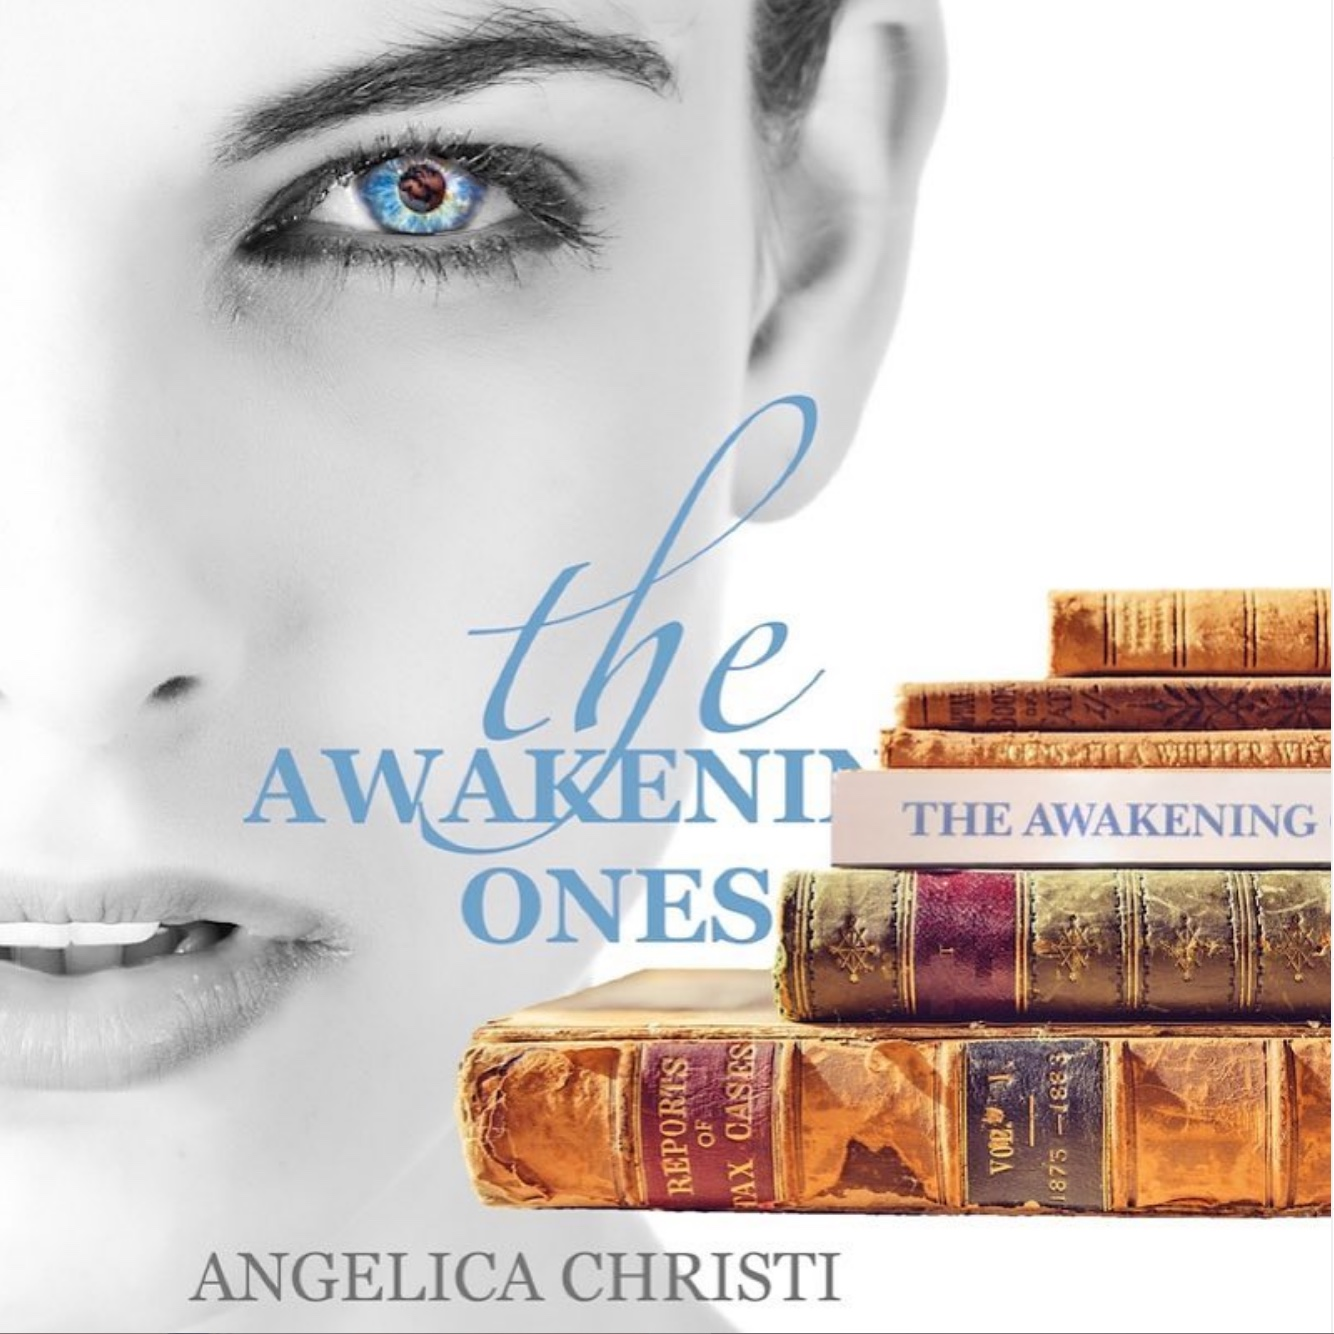 An Urgent Message for Humanity - THE AWAKENING ONES is an important read for raising your awareness & vibration in the madness of today's world. A journey for clarity & understanding the importance of your internal inner work to align your energy with the new upcoming 6th dimensional world during this peak time of planetary transformation. Click book to review or purchase.